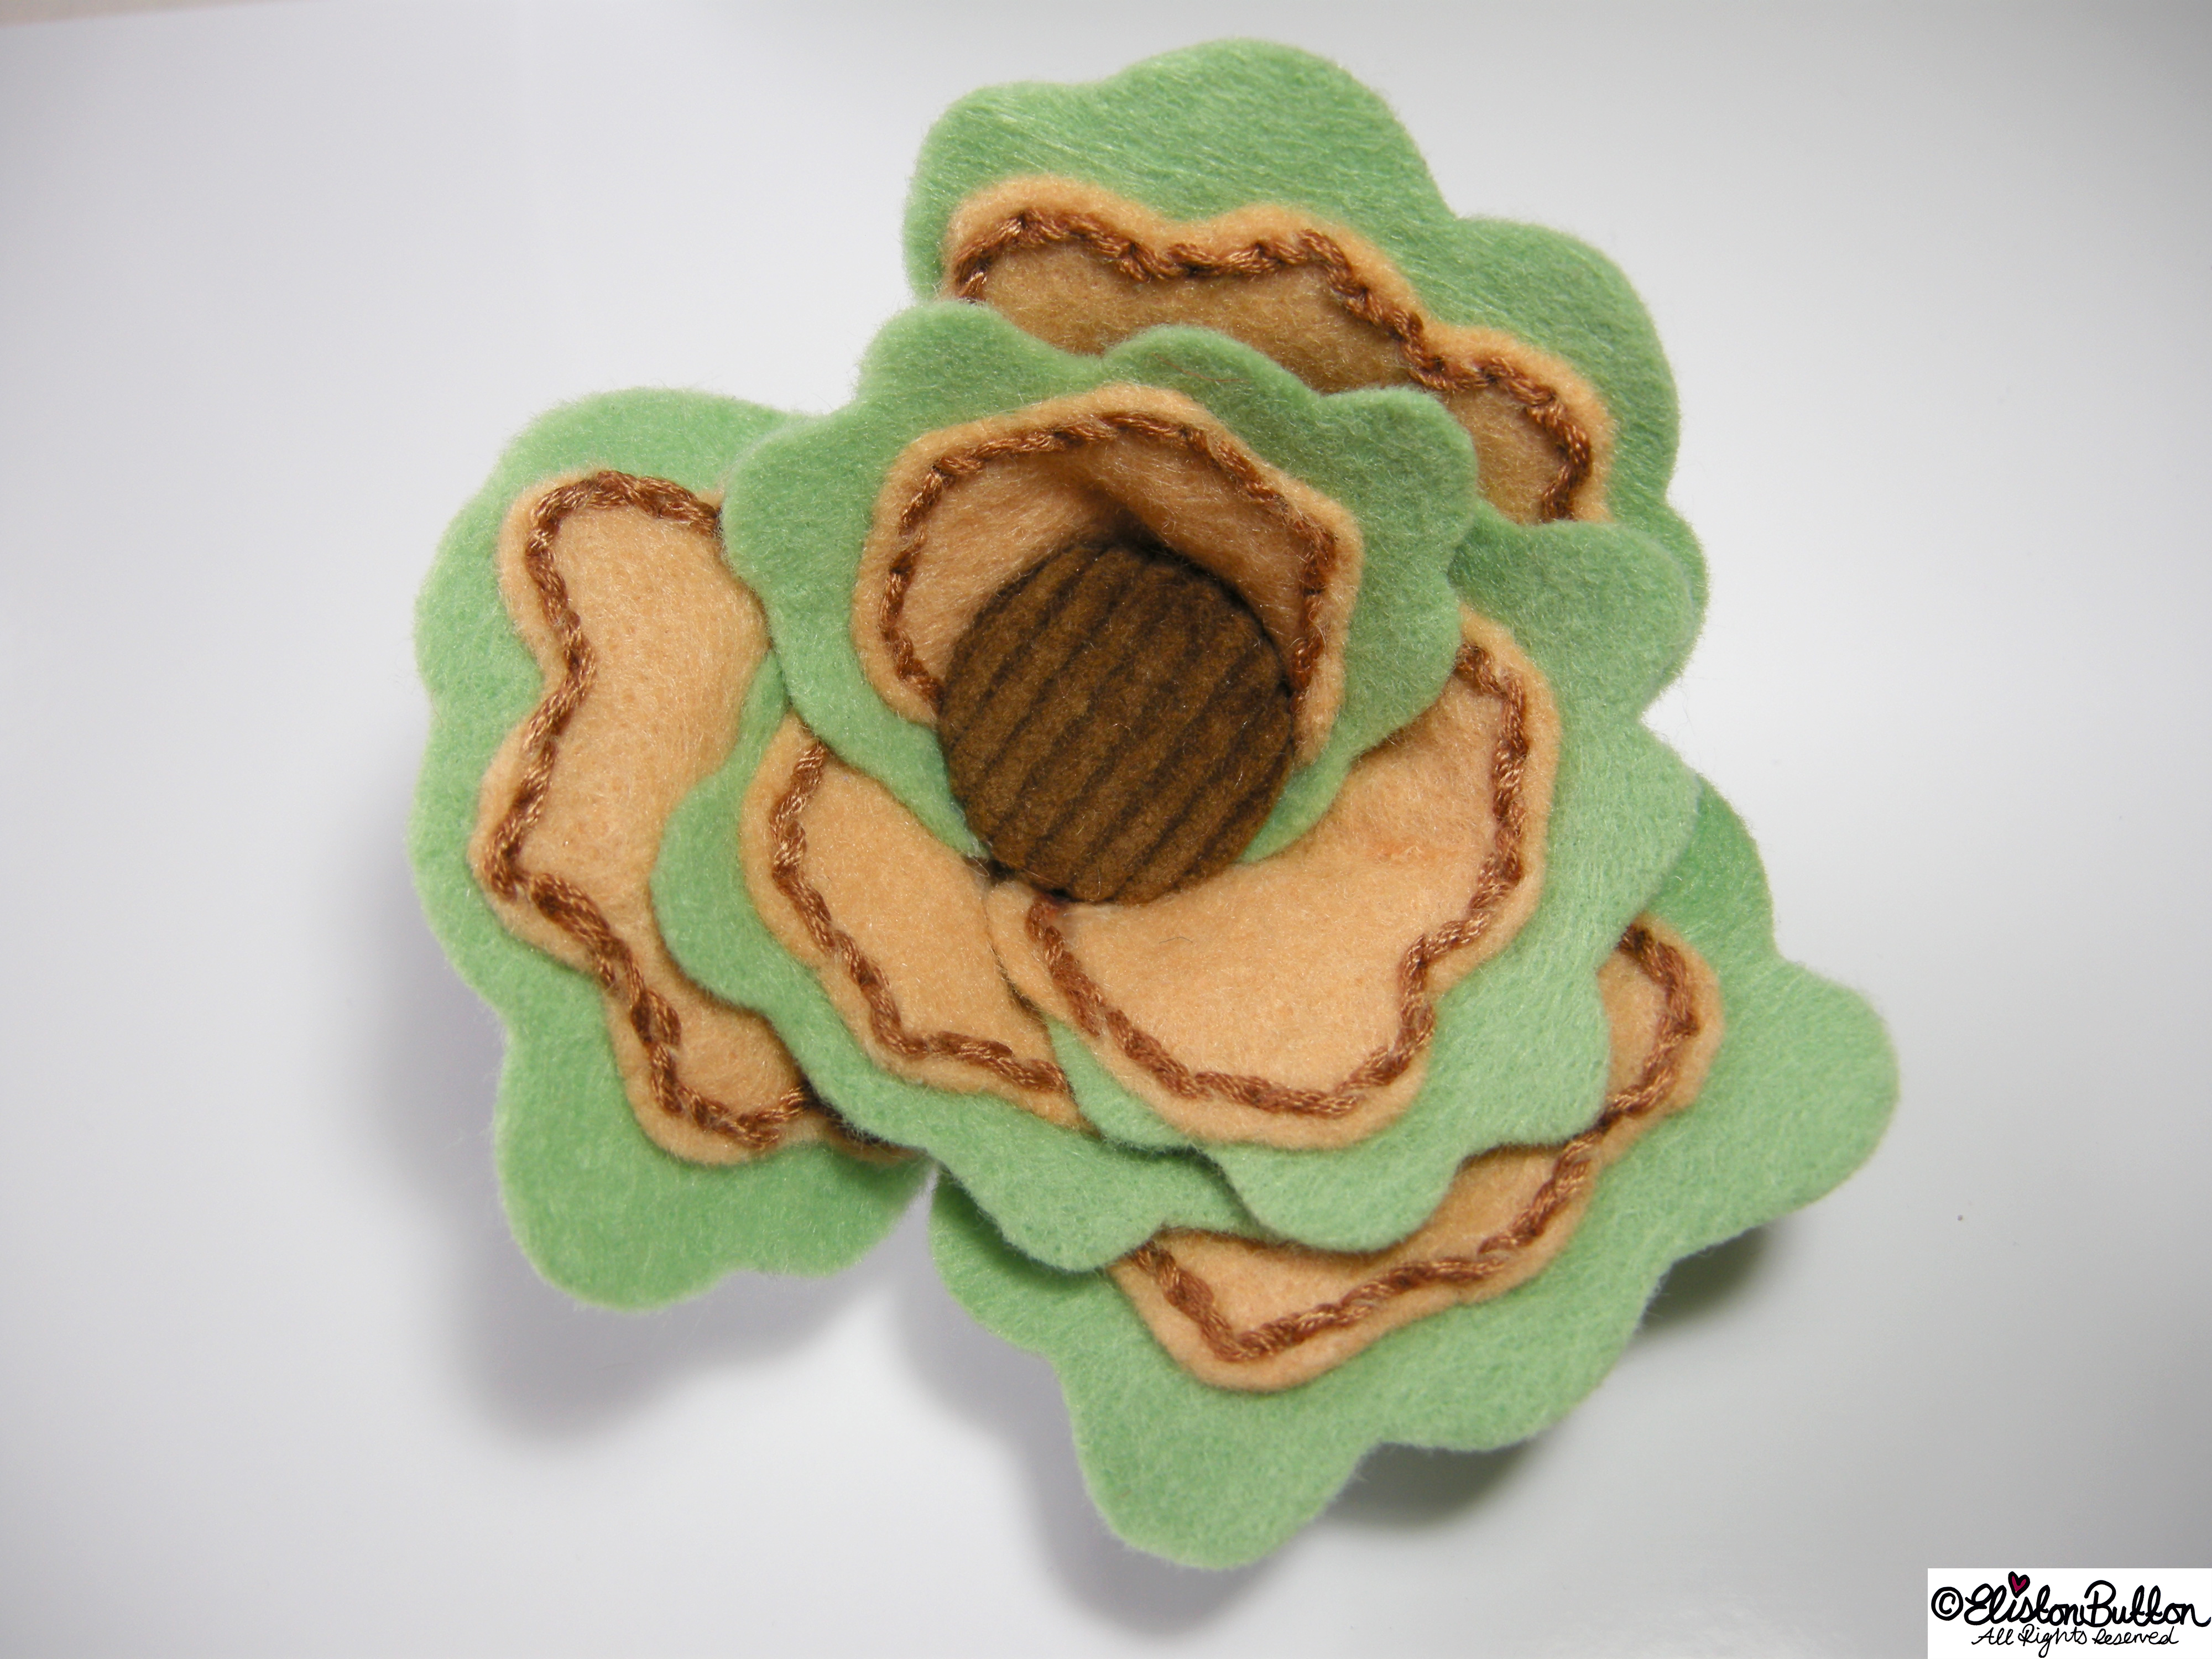 Sage and Onion Mint Green, Beige and Brown Felt Flower Brooch with Brown Corduroy Button Centre - 27 Before 27 - Sage & Onion at www.elistonbutton.com - Eliston Button - That Crafty Kid – Art, Design, Craft & Adventure.